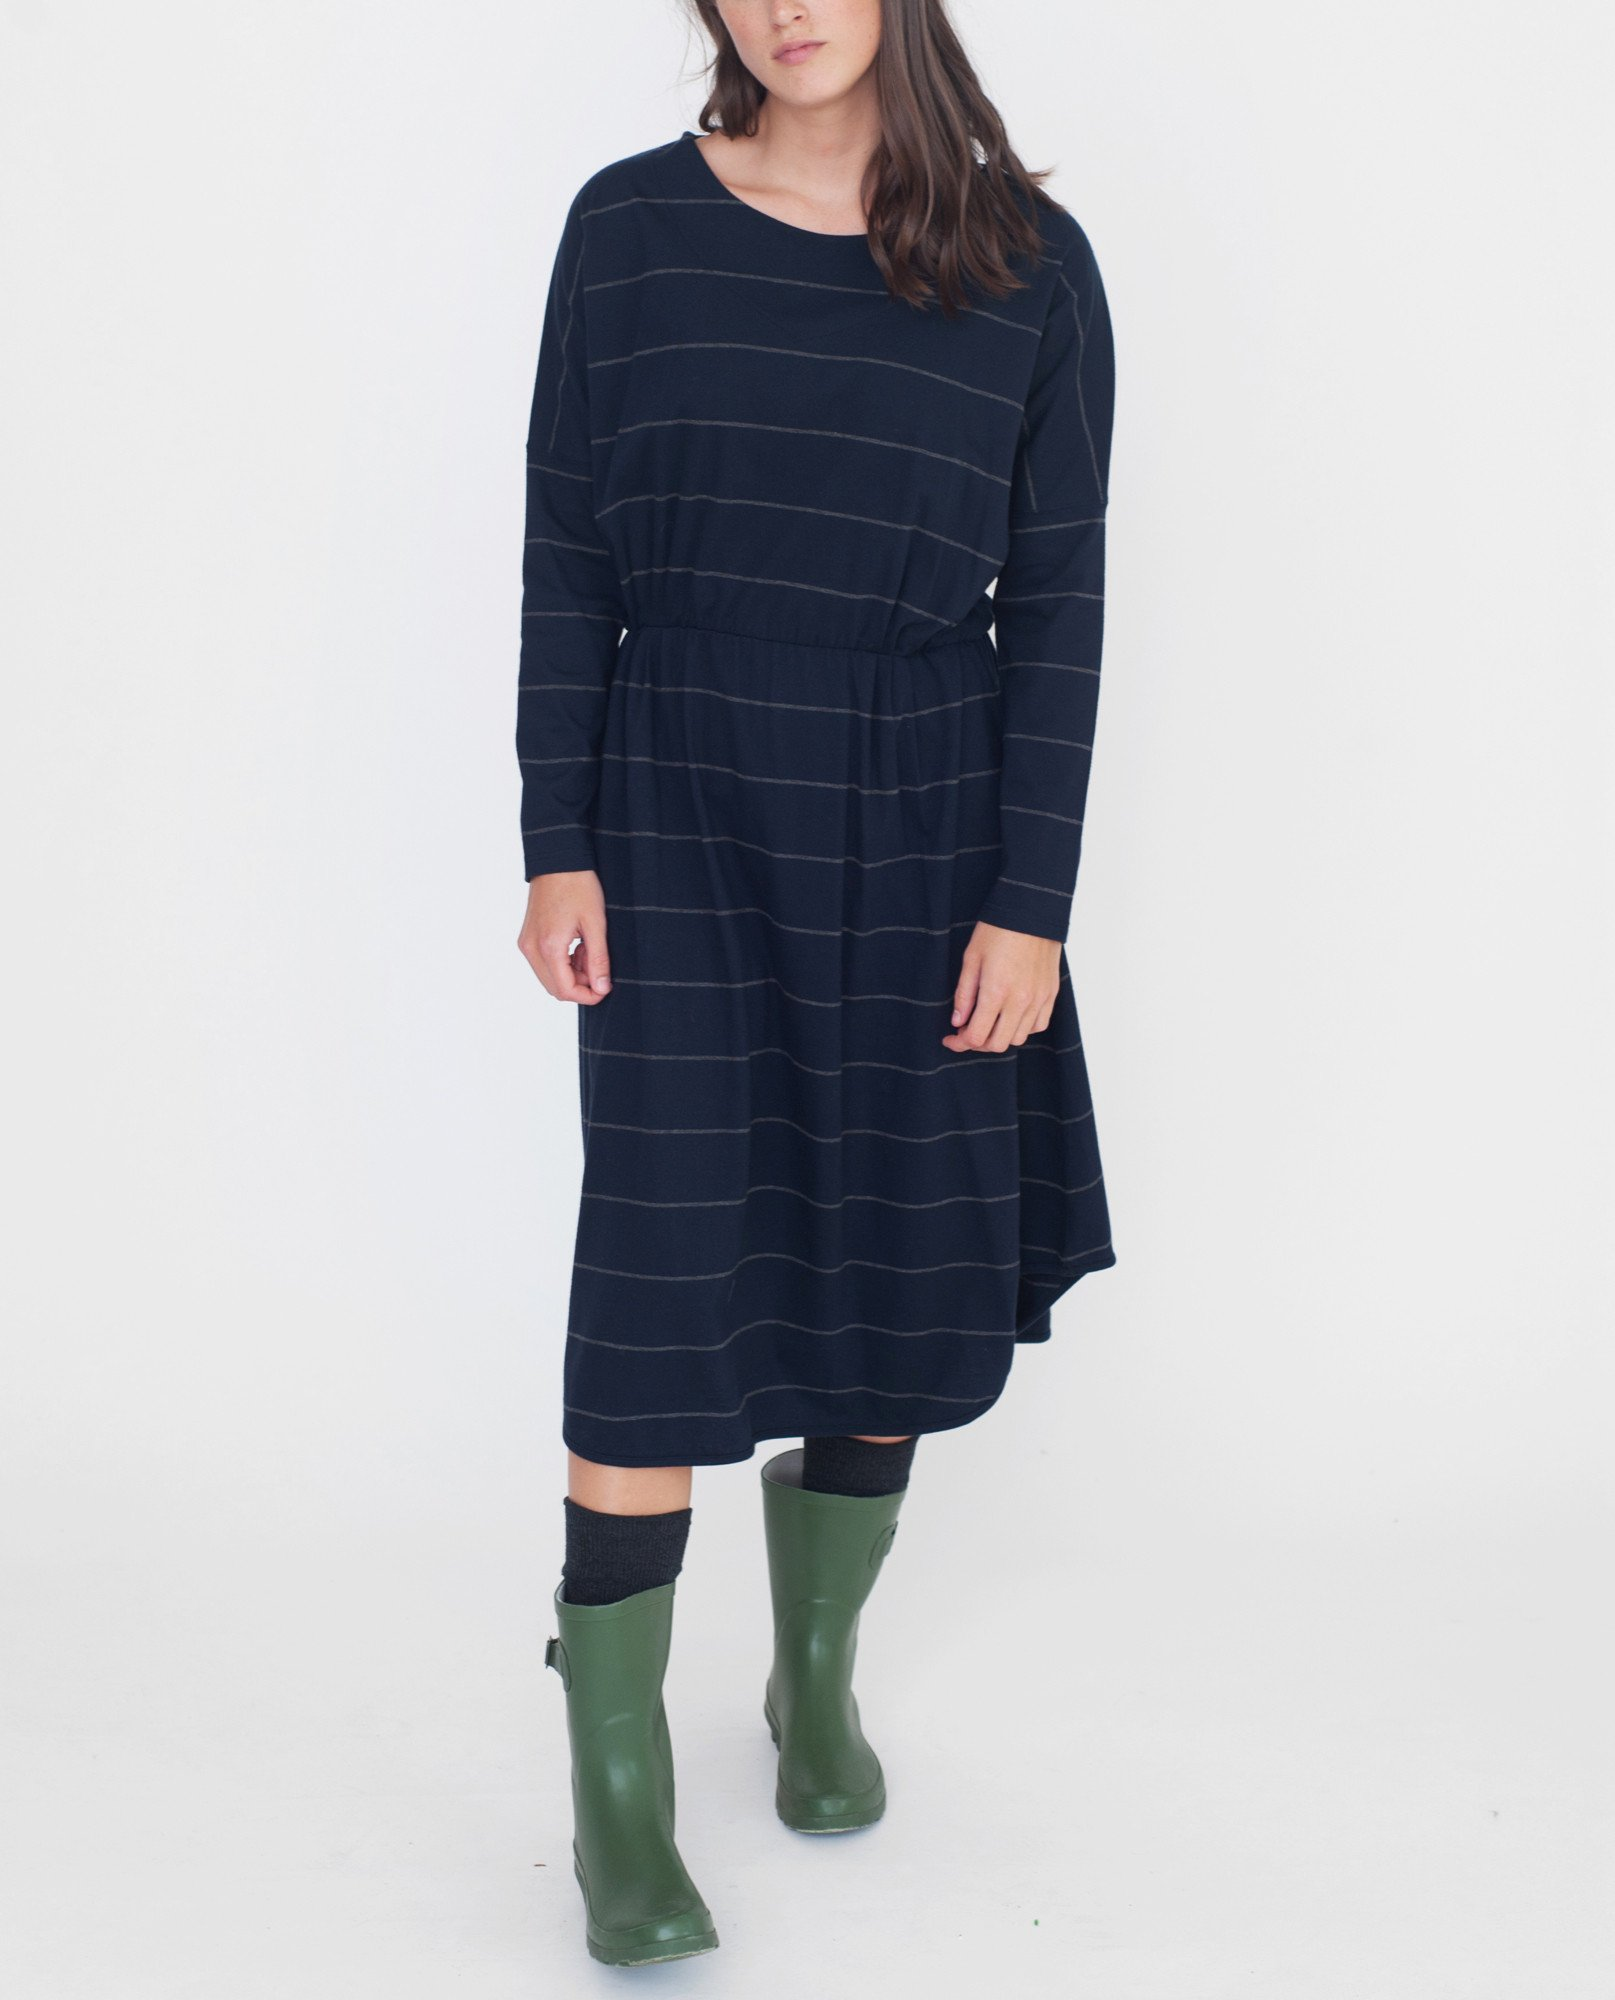 SARAH Organic Cotton Dress In Navy And Dark Grey from Beaumont Organic